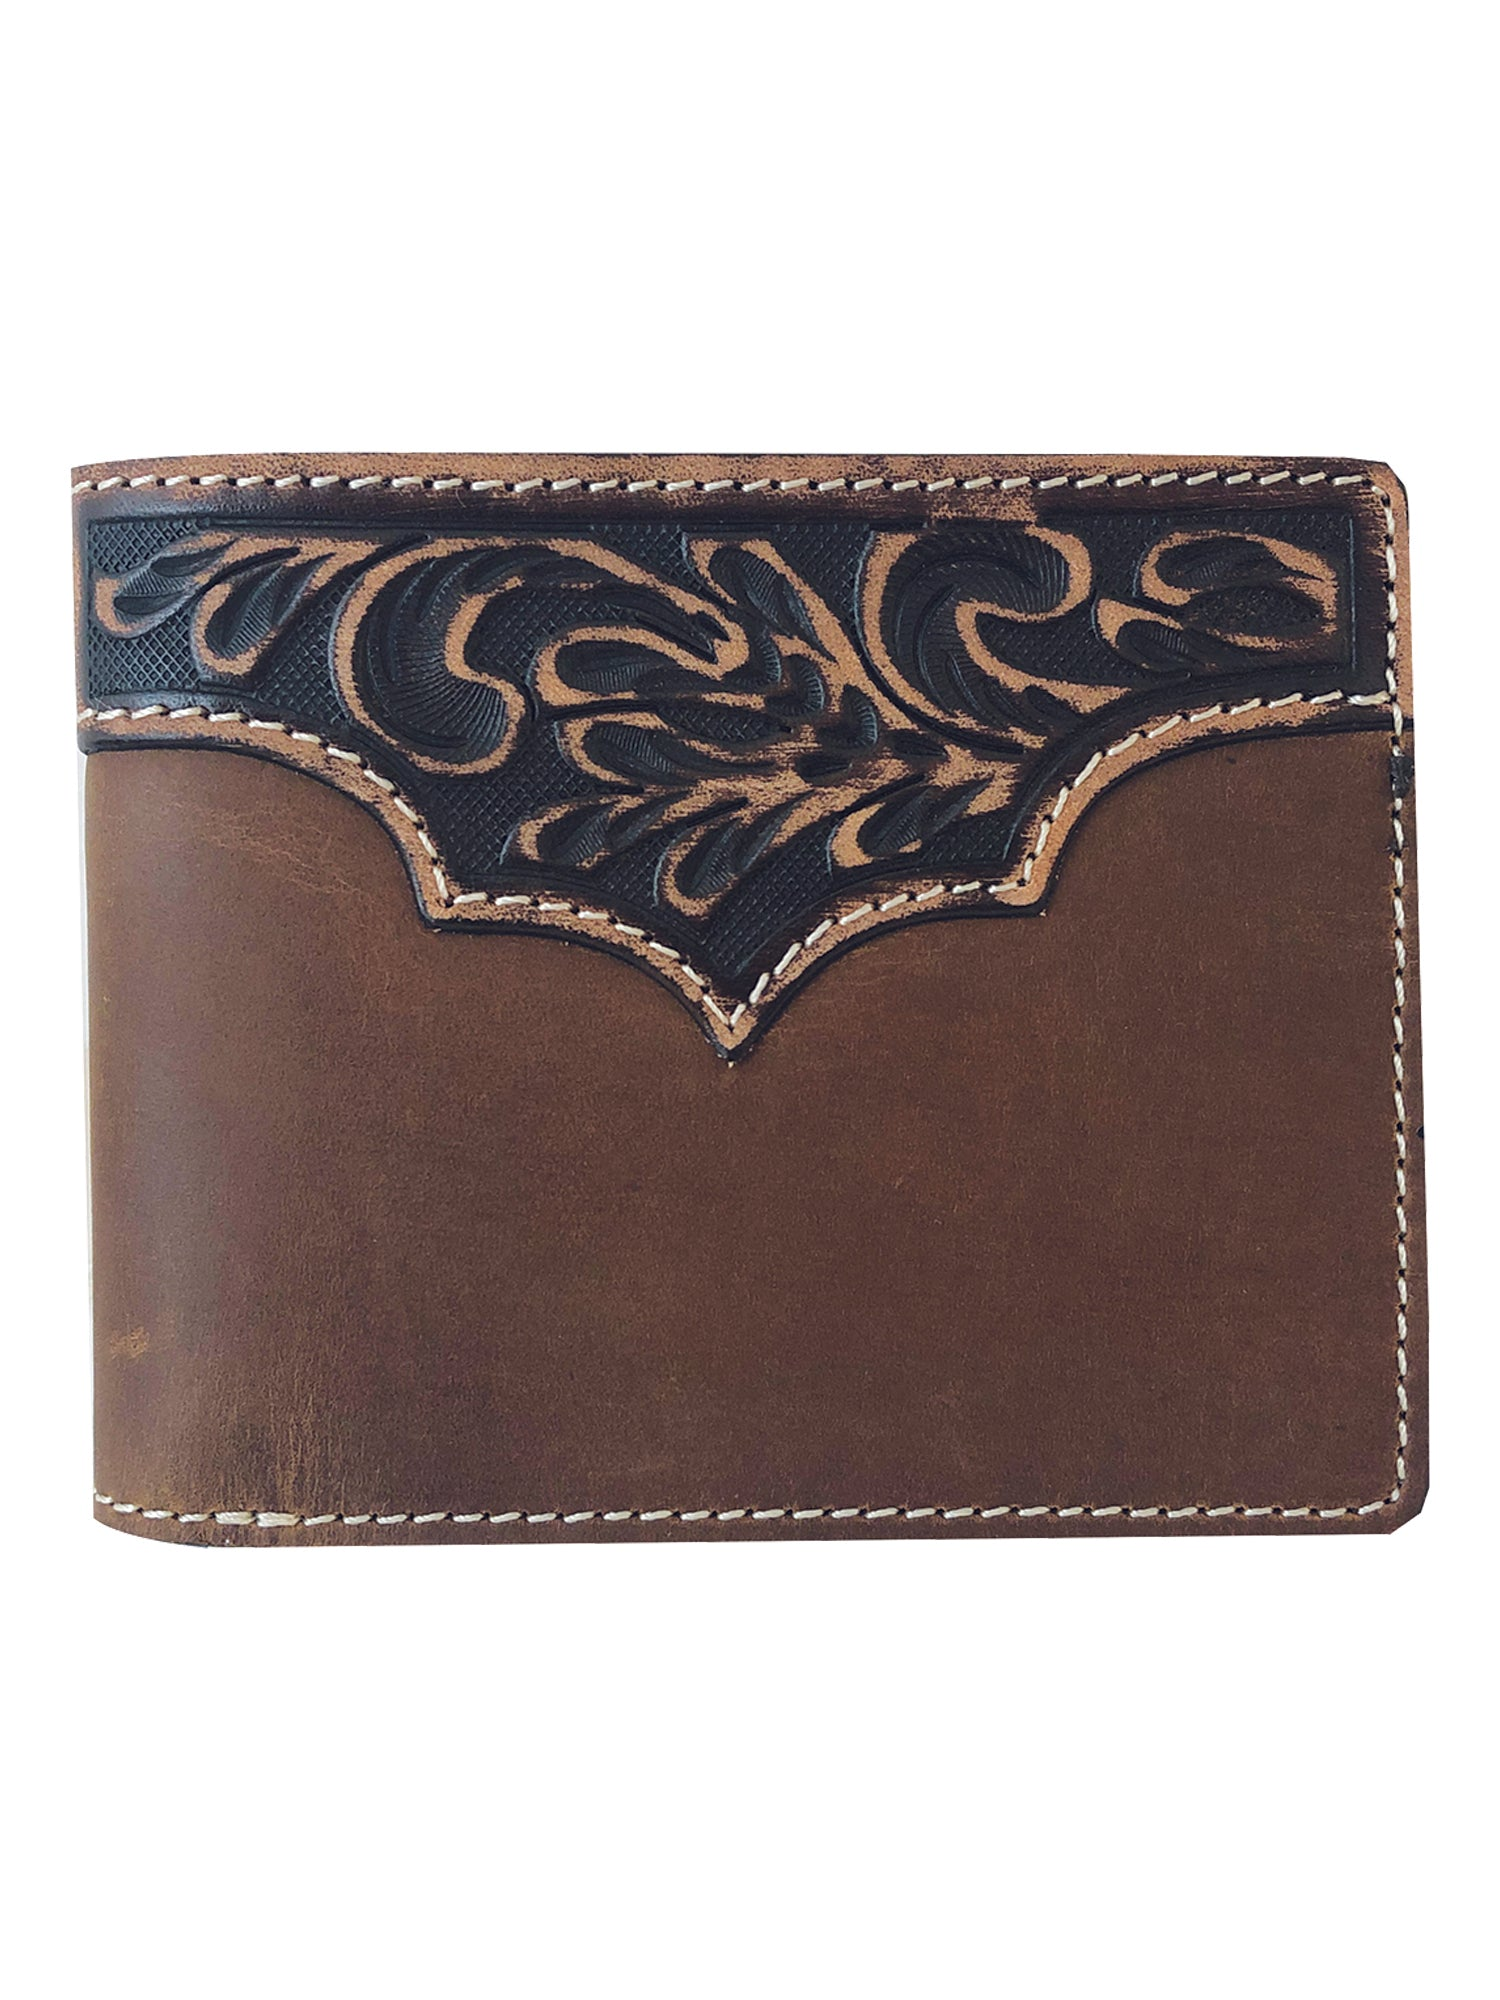 Roper Distress Crazyhorse Leather Passcase Wallet_1